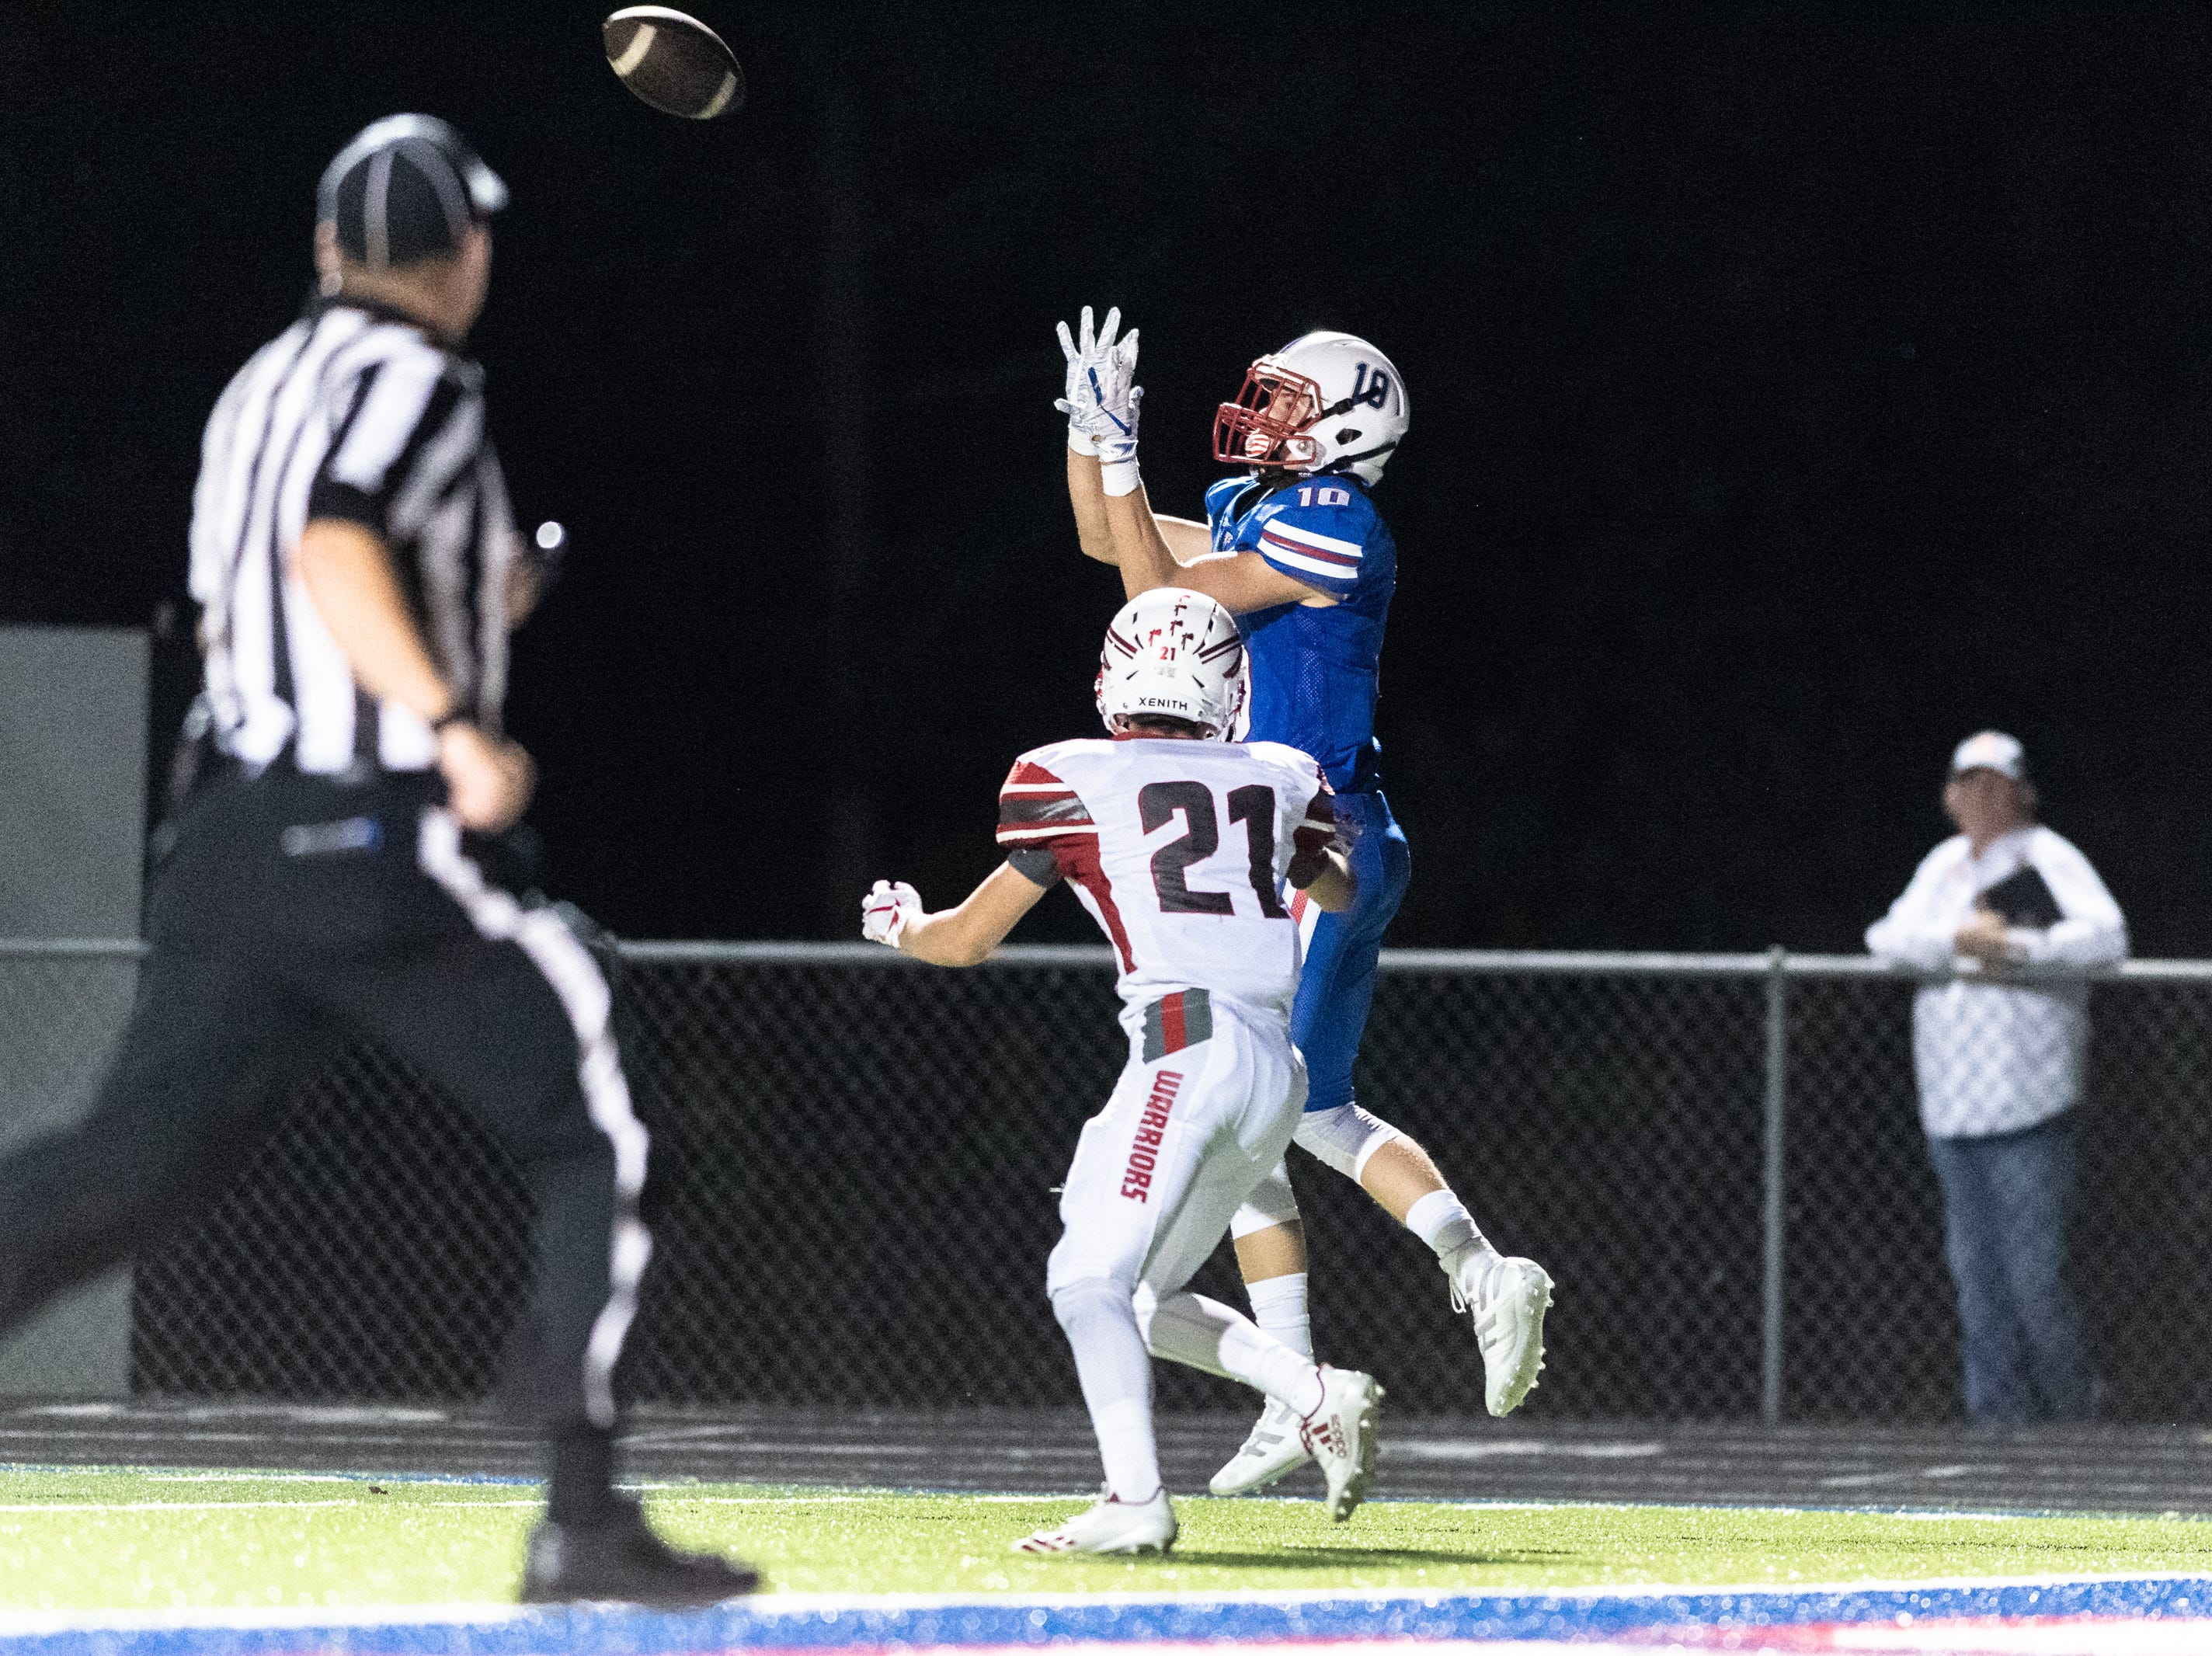 West Henderson's TJ Fink makes a catch, running the ball in for a touchdown past Erwin's Mason Eppler during their game Sept. 28, 2018.